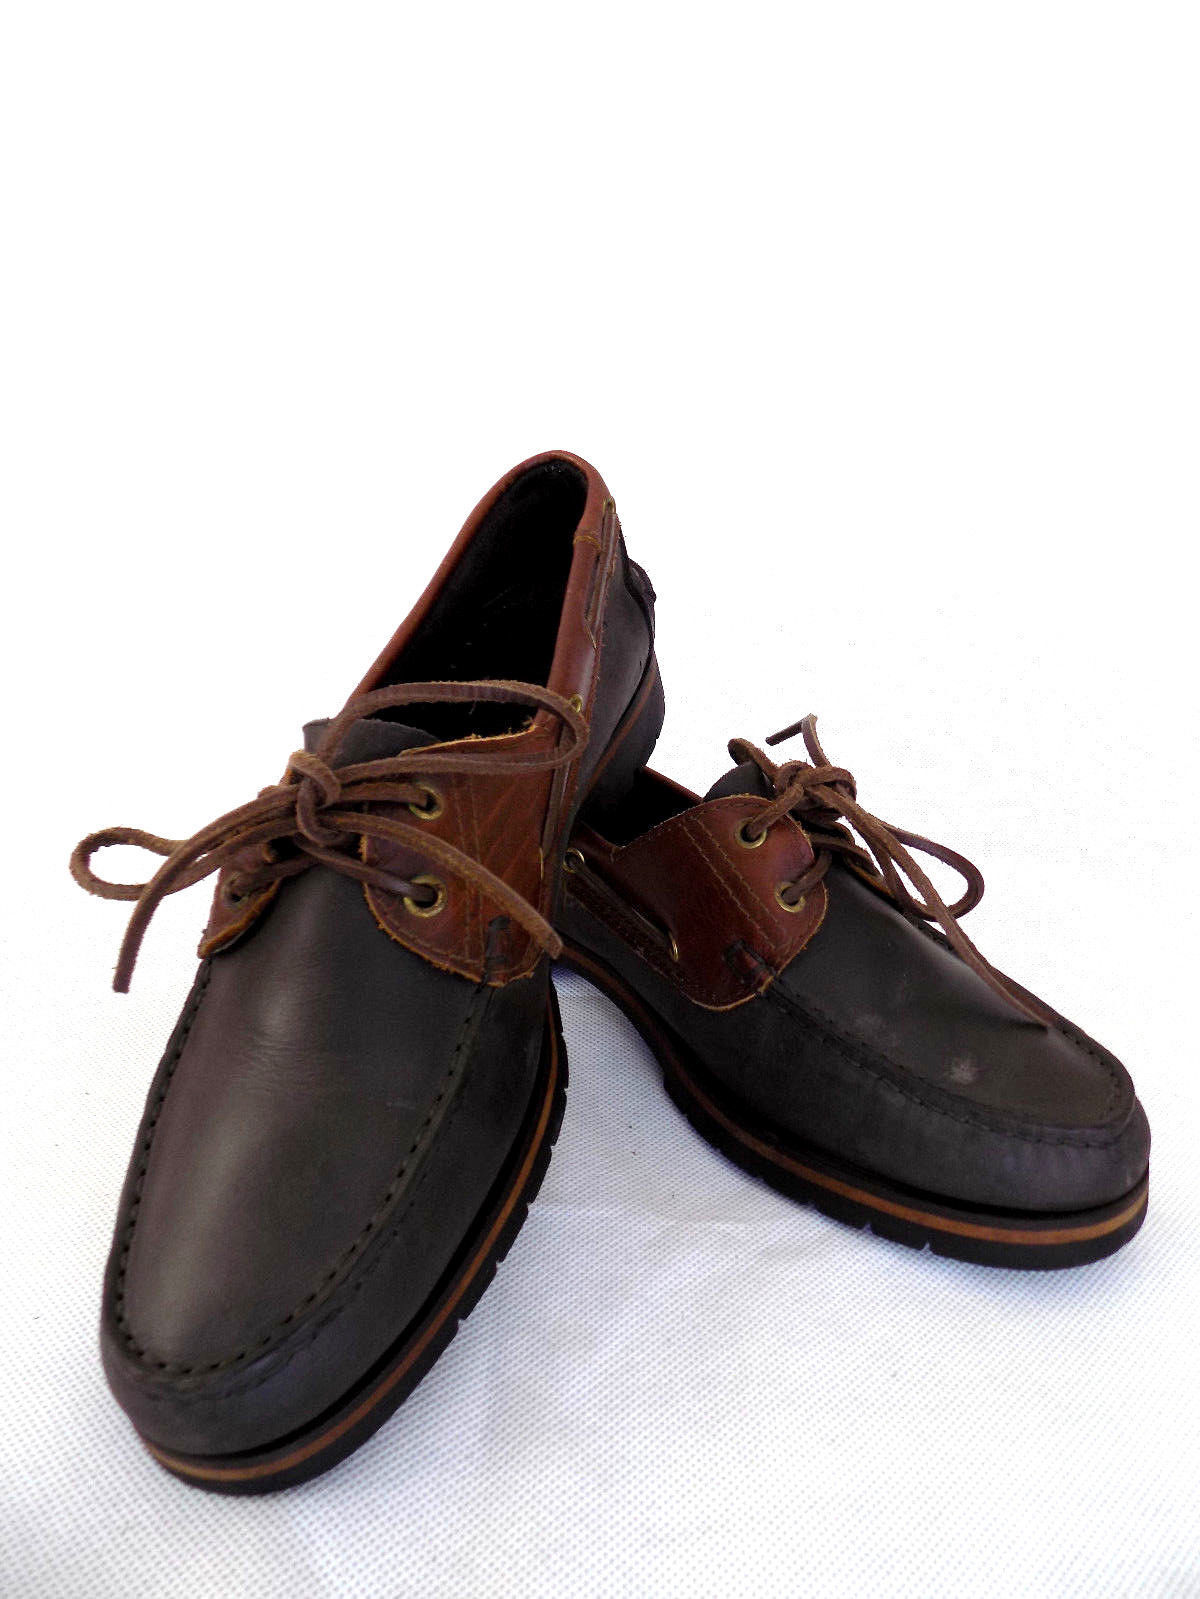 TEXTER Mens Boat Shoes Size 43 Brown and Gray Blue Leather Casual Shoes Summer